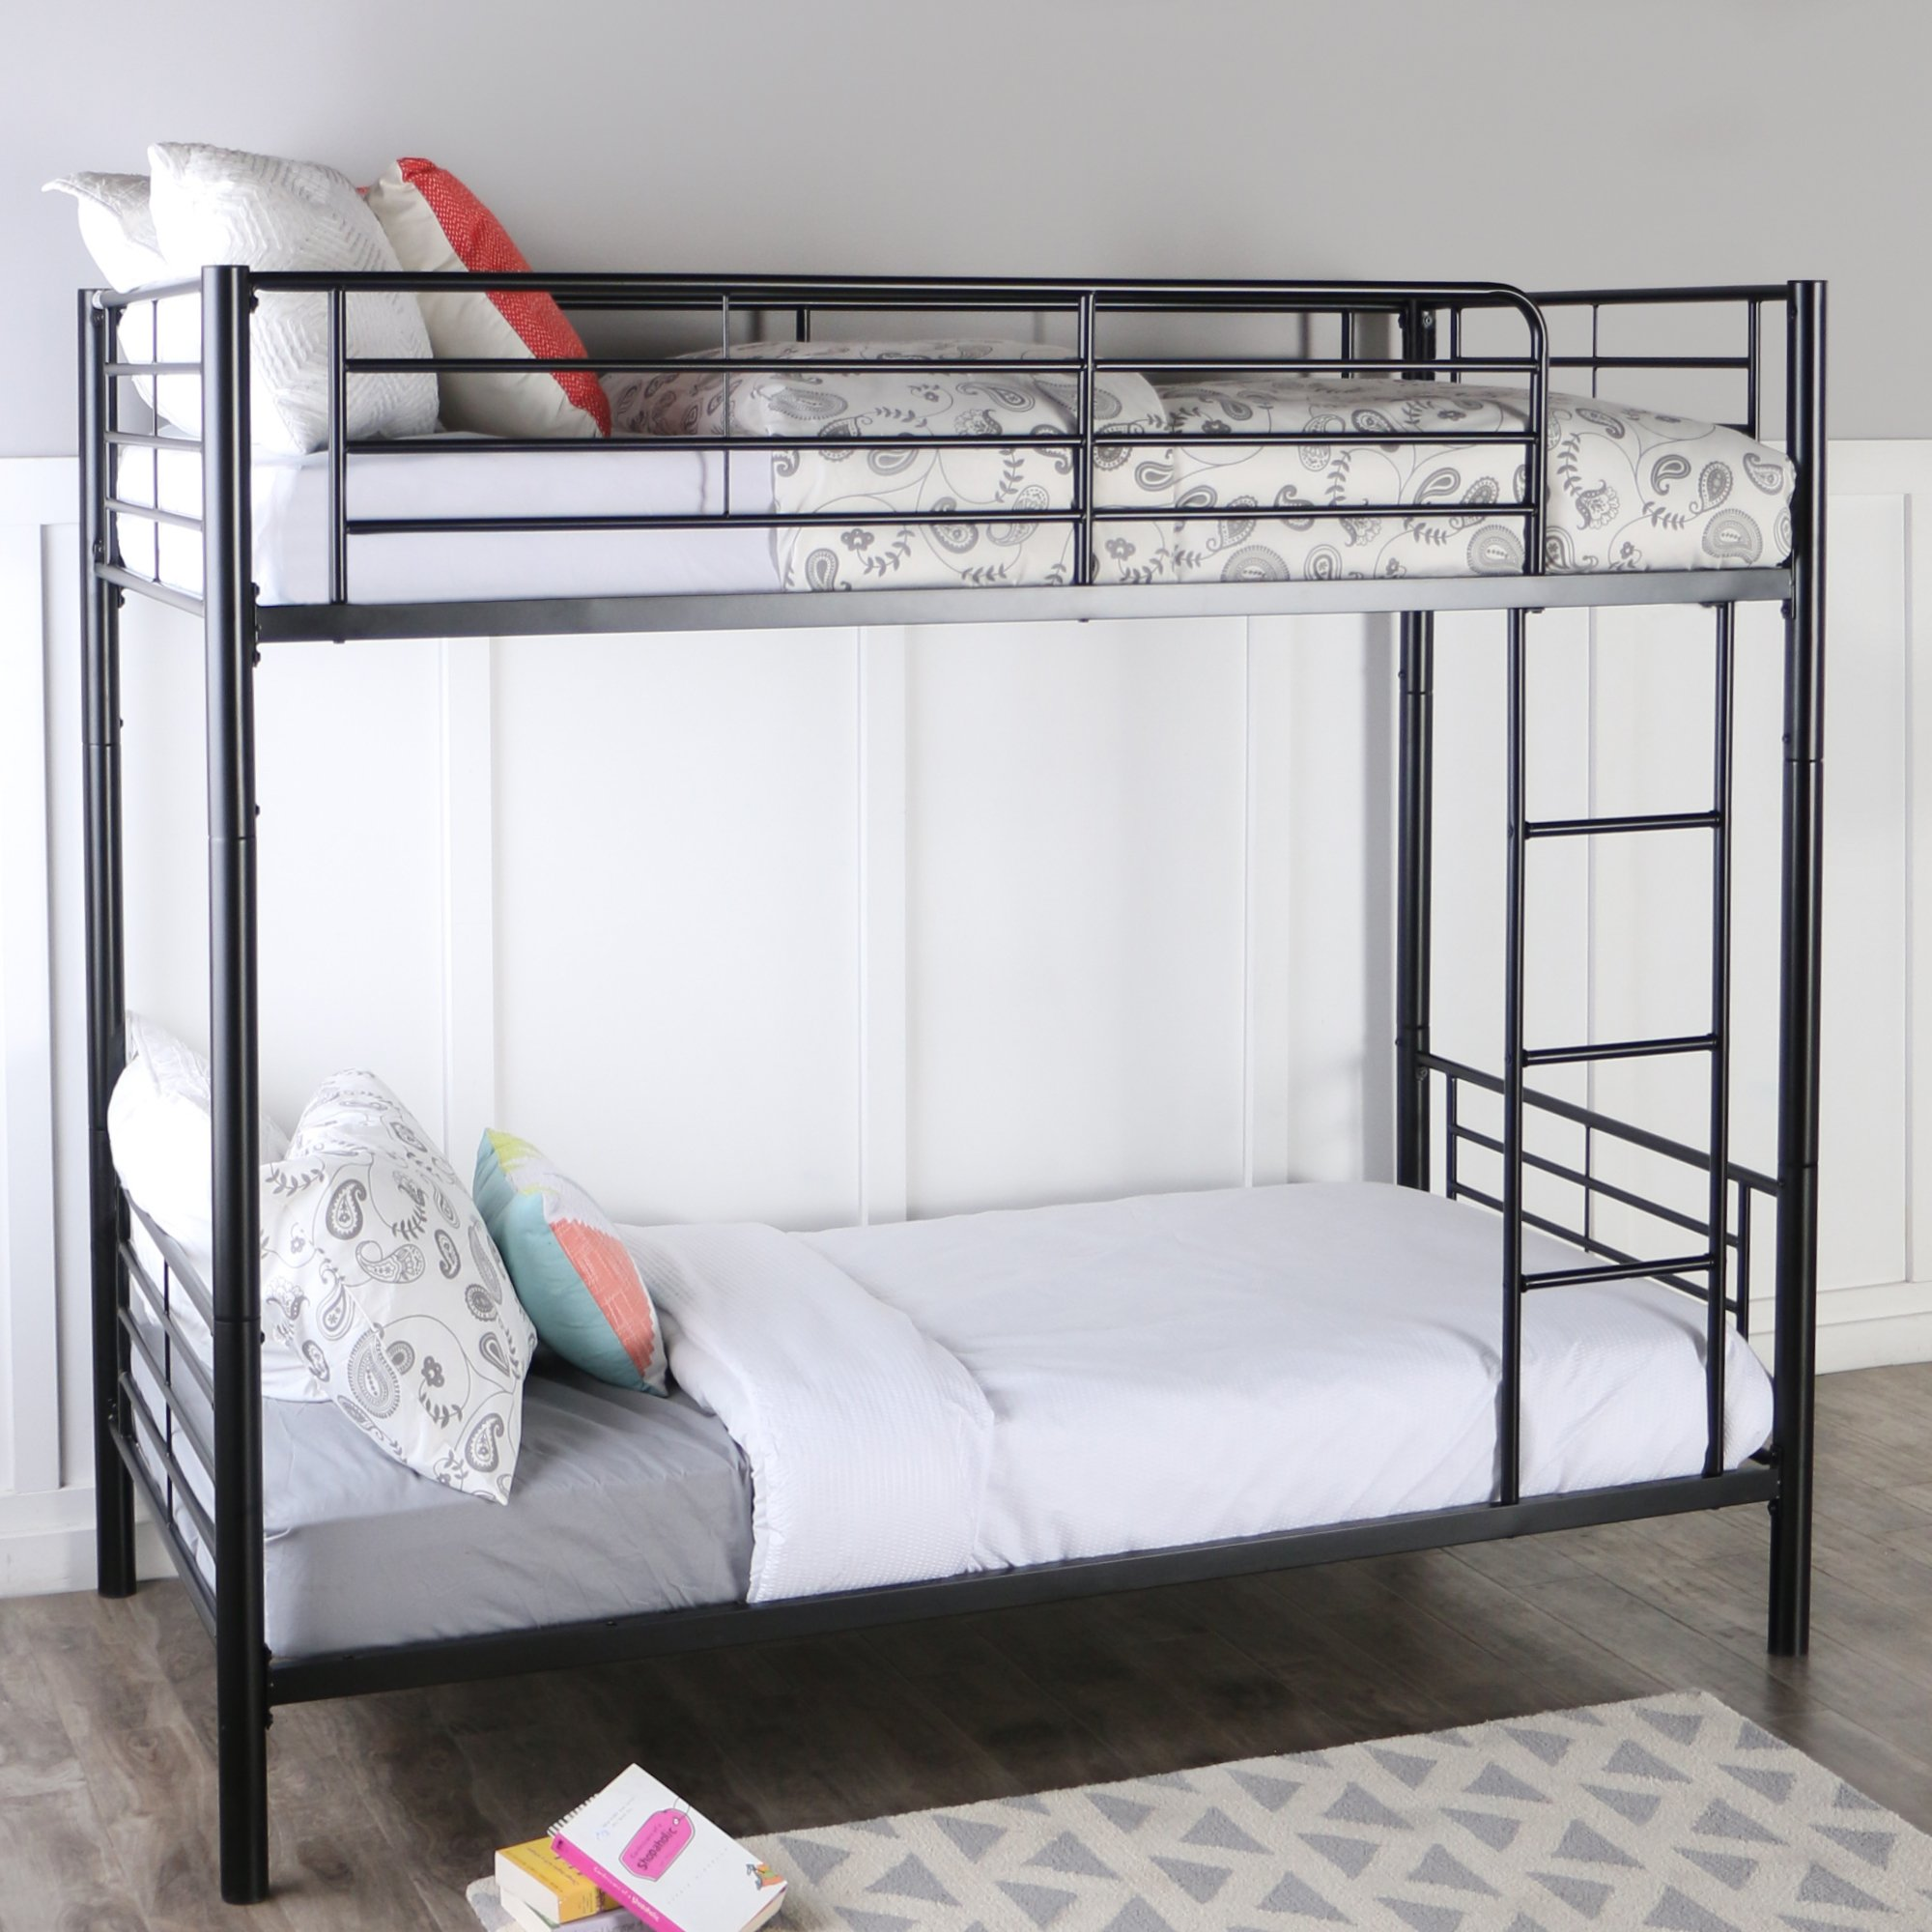 Sturdy Metal Twin-over-Twin Bunk Bed in Black Finish by Home Accent Furnishings (Image #3)